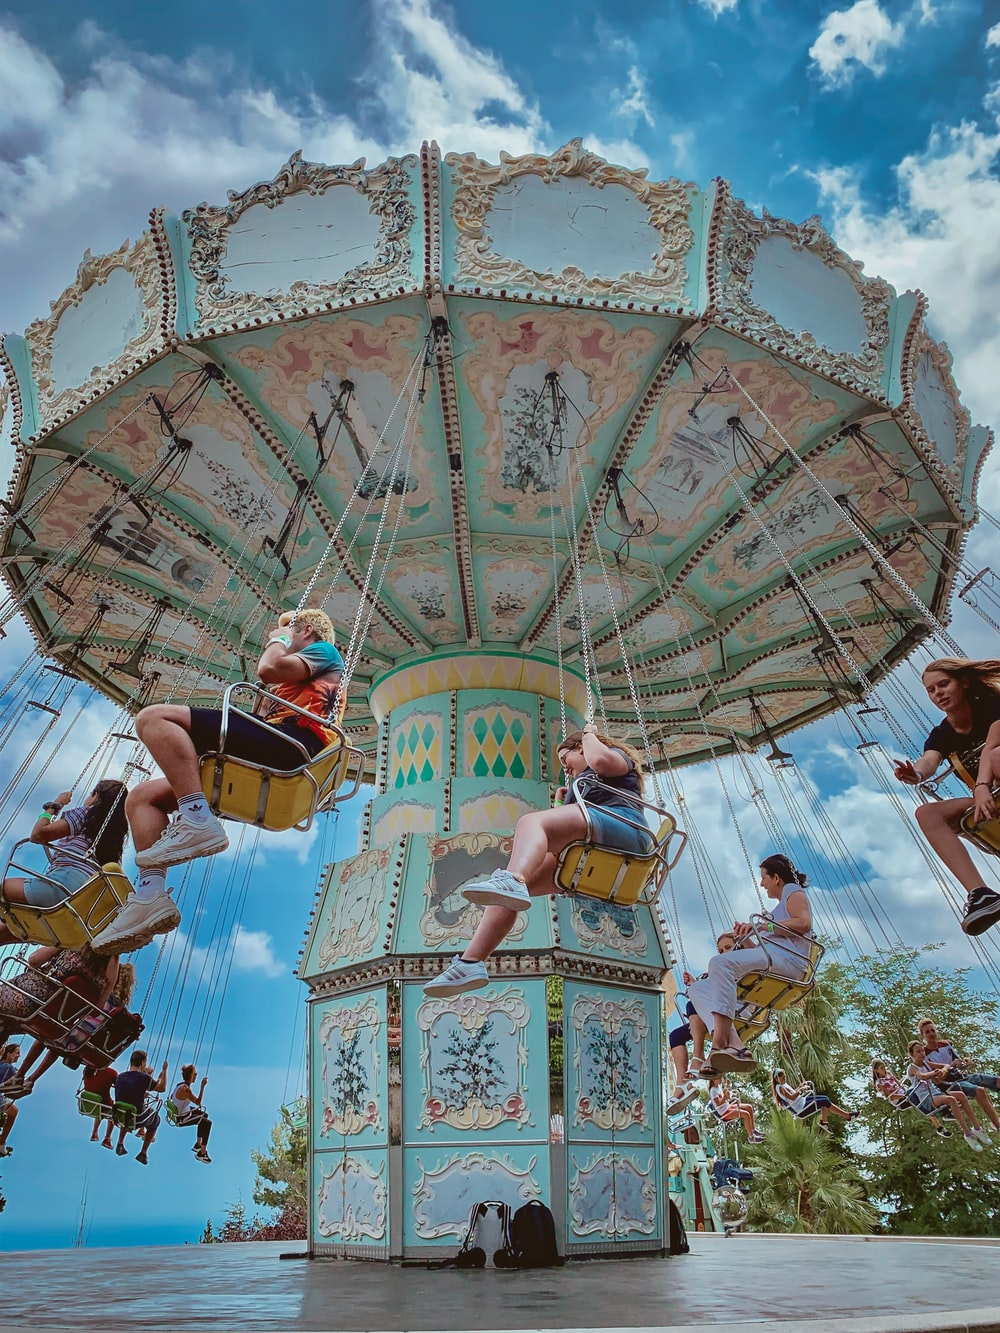 people riding on merry-go-round during daytime